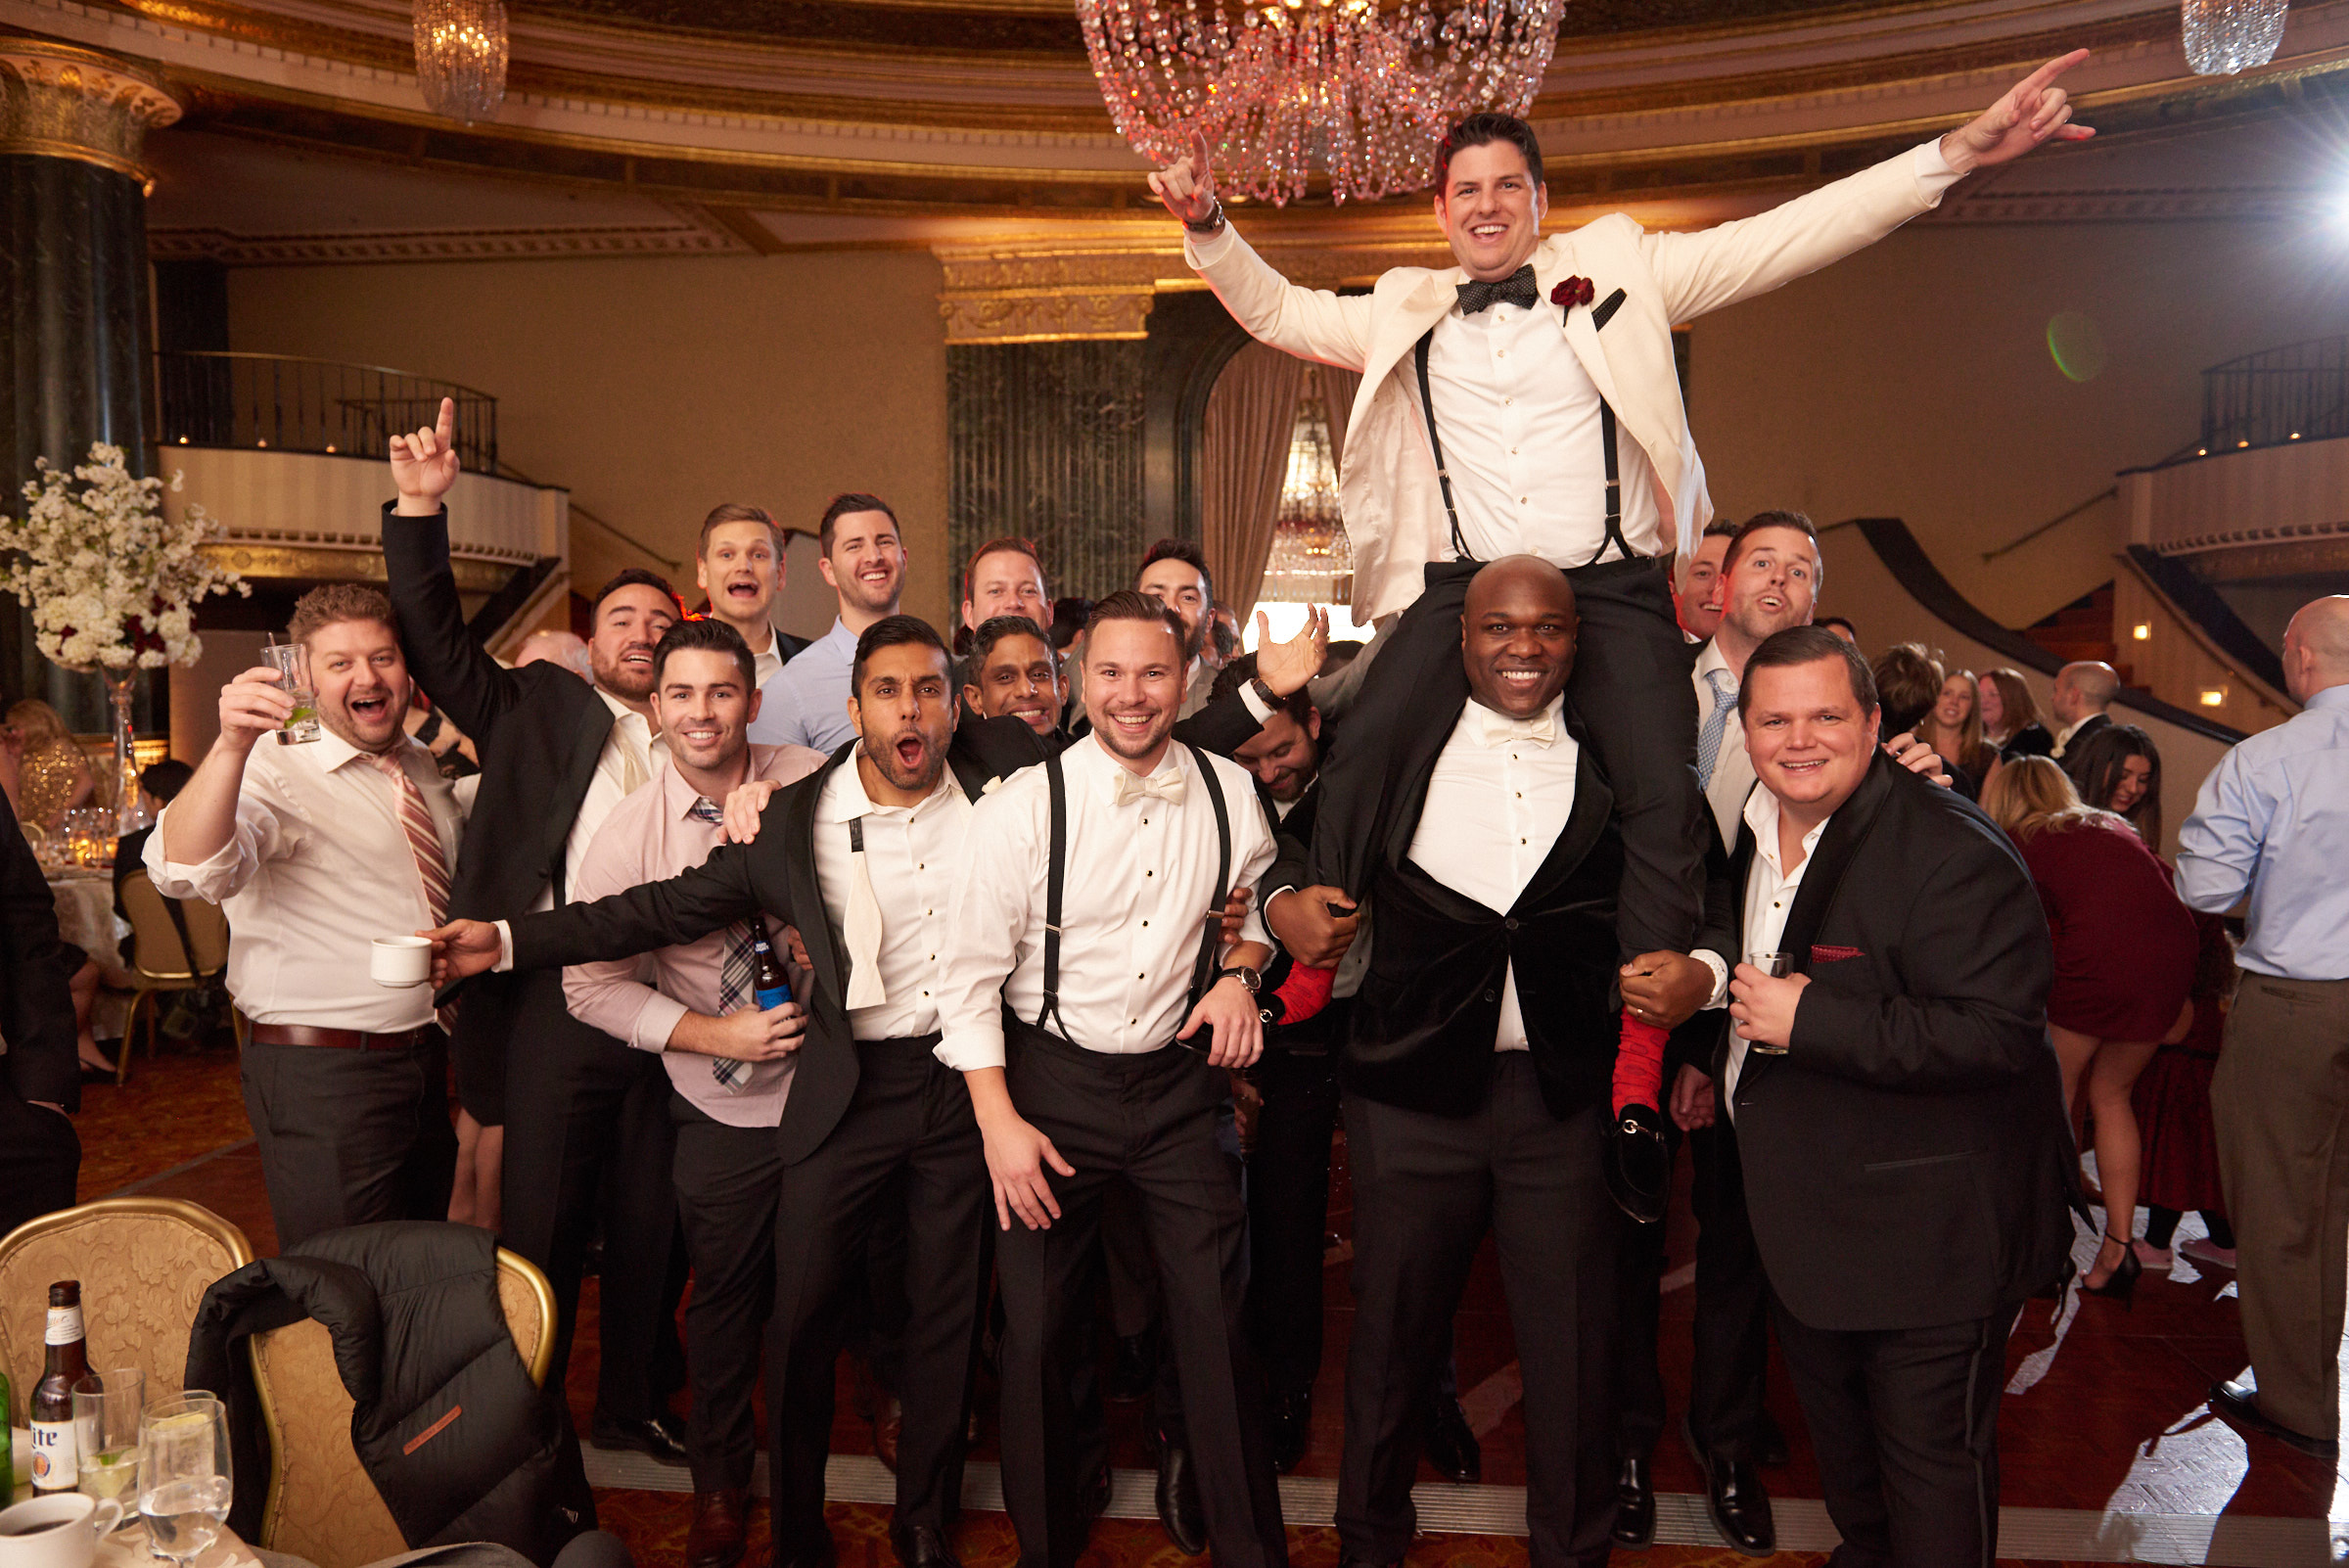 Groom lifted up in the air at reception